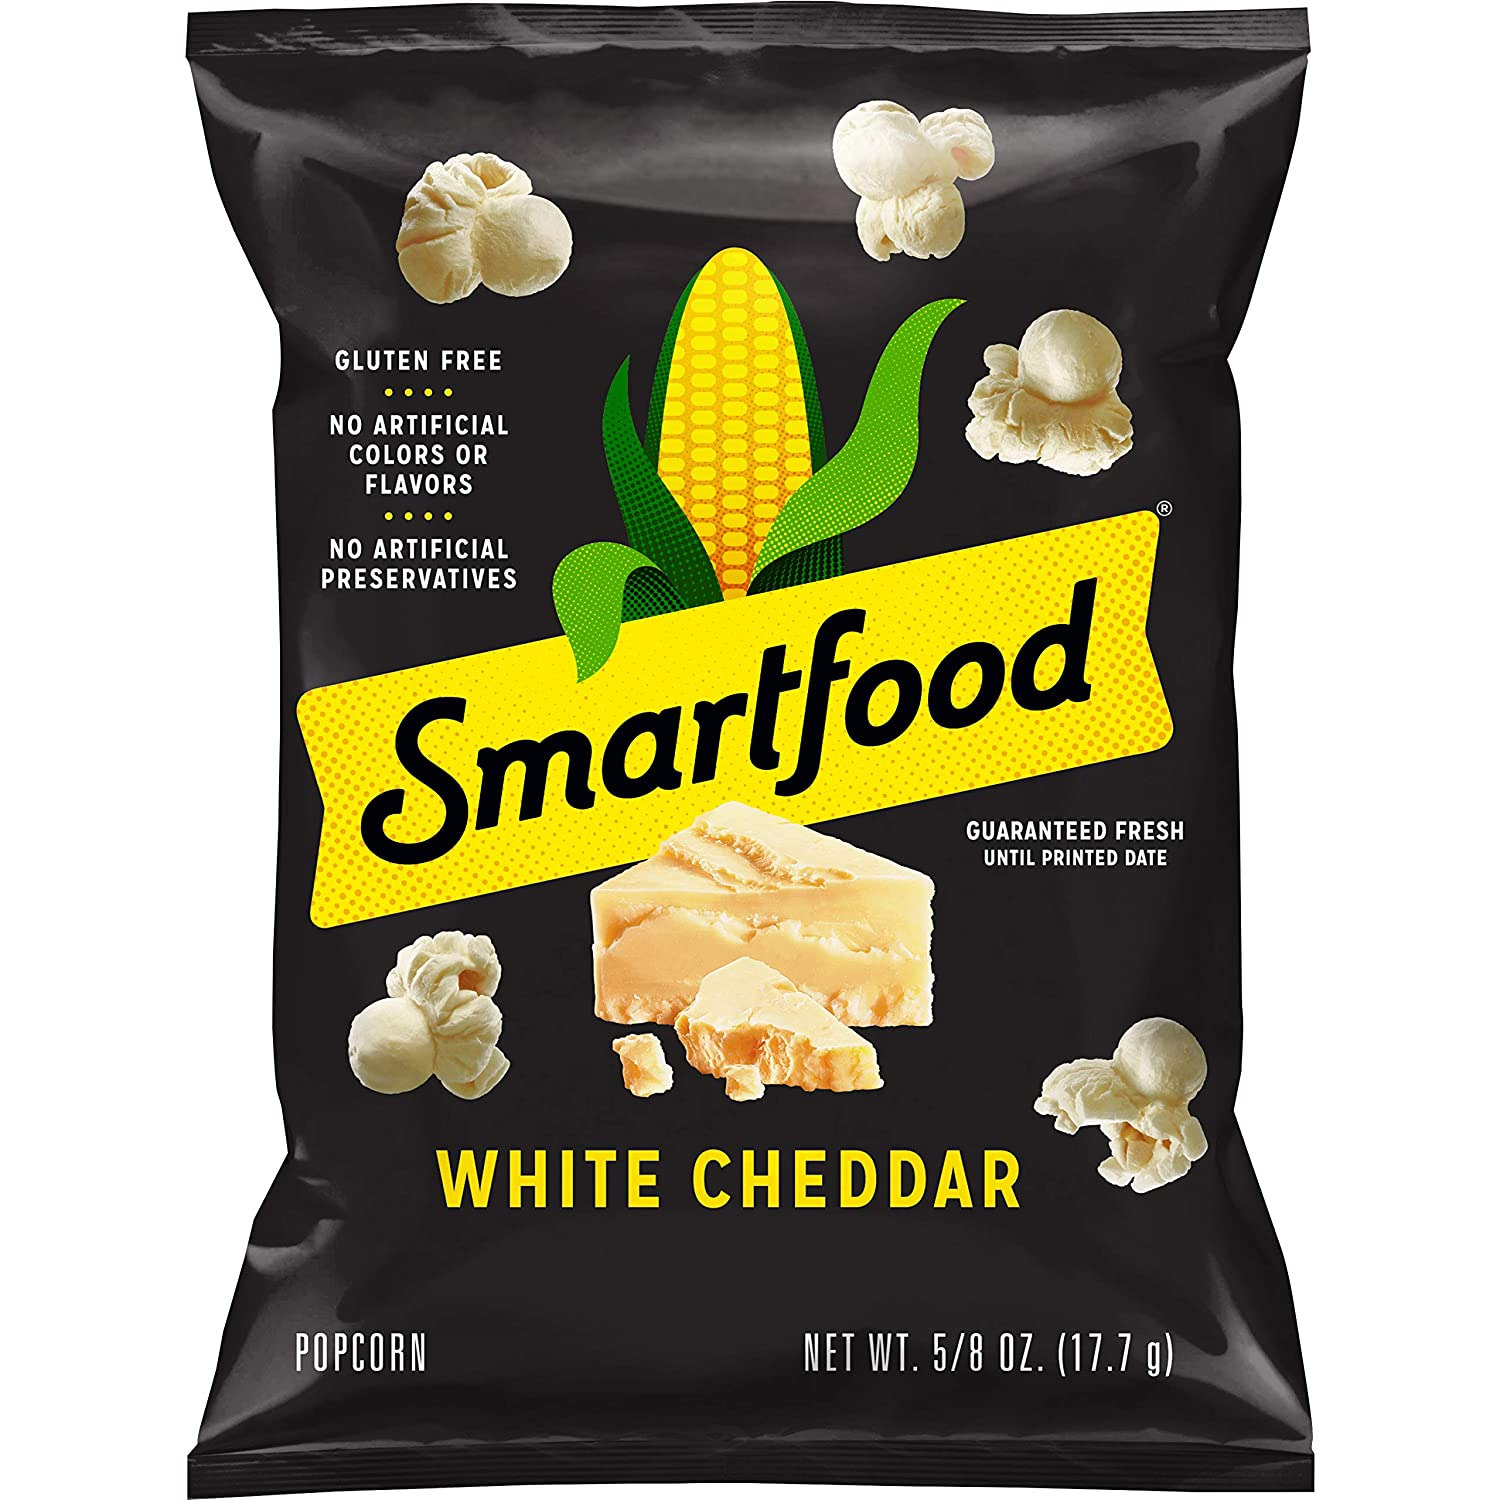 Smartfood White Cheddar Flavored Popcorn, 0.625 Ounce (Pack of 40) (Packaging May Vary)